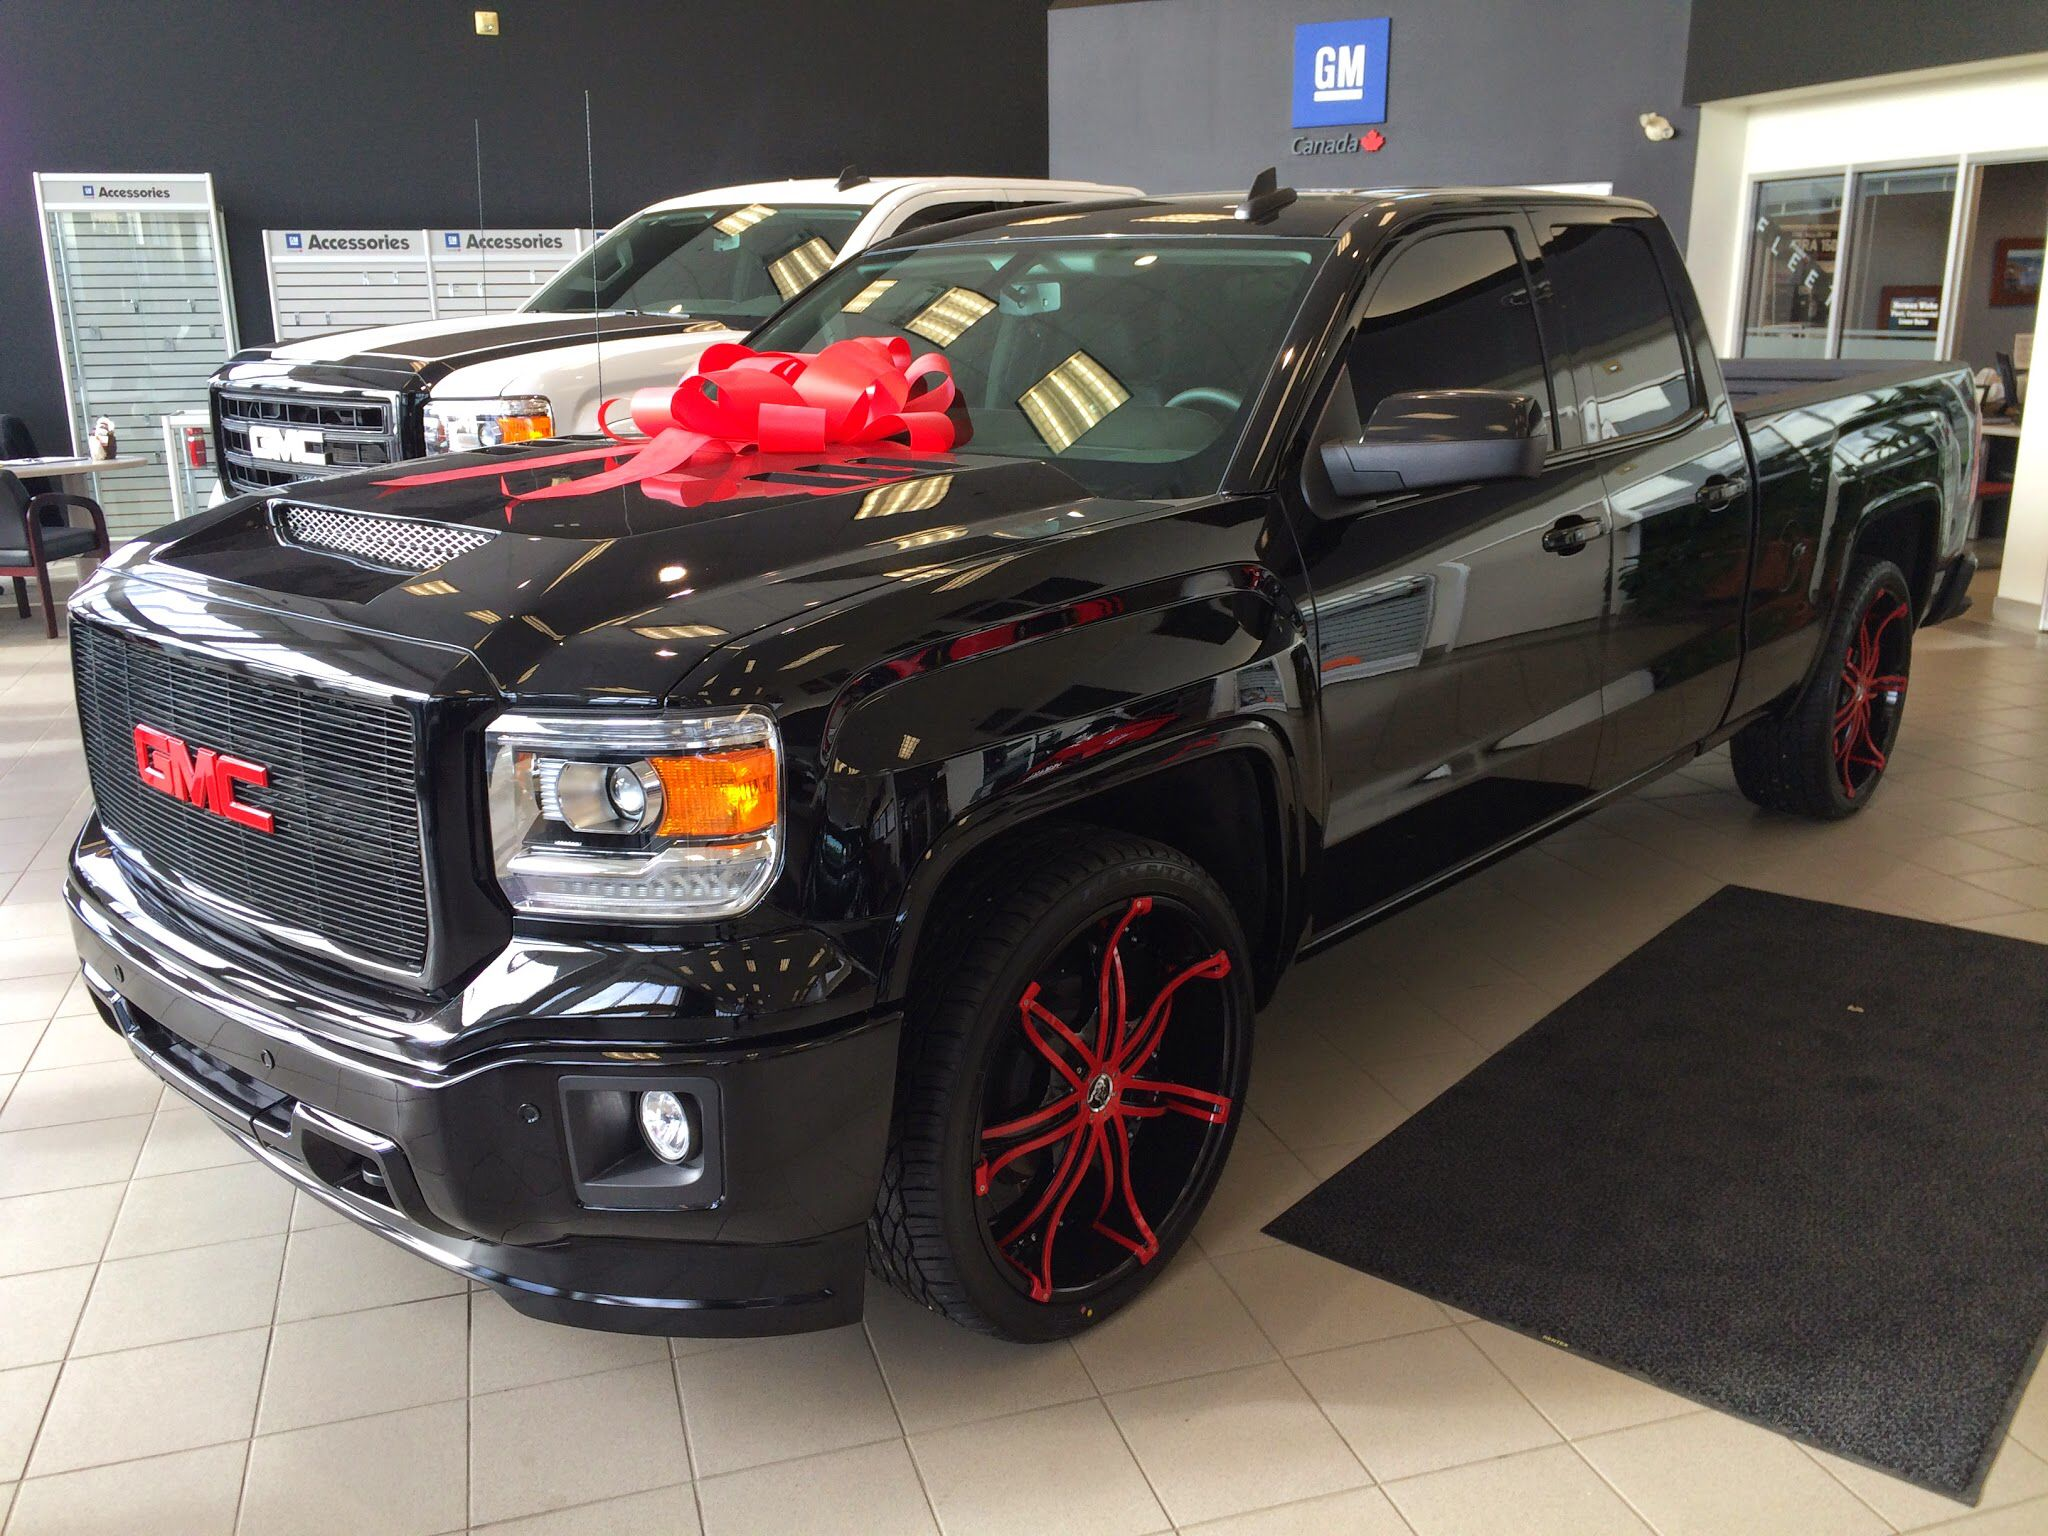 2015 gmc sierra 1500 all terrain slt with all the trimmings ready for the auto show